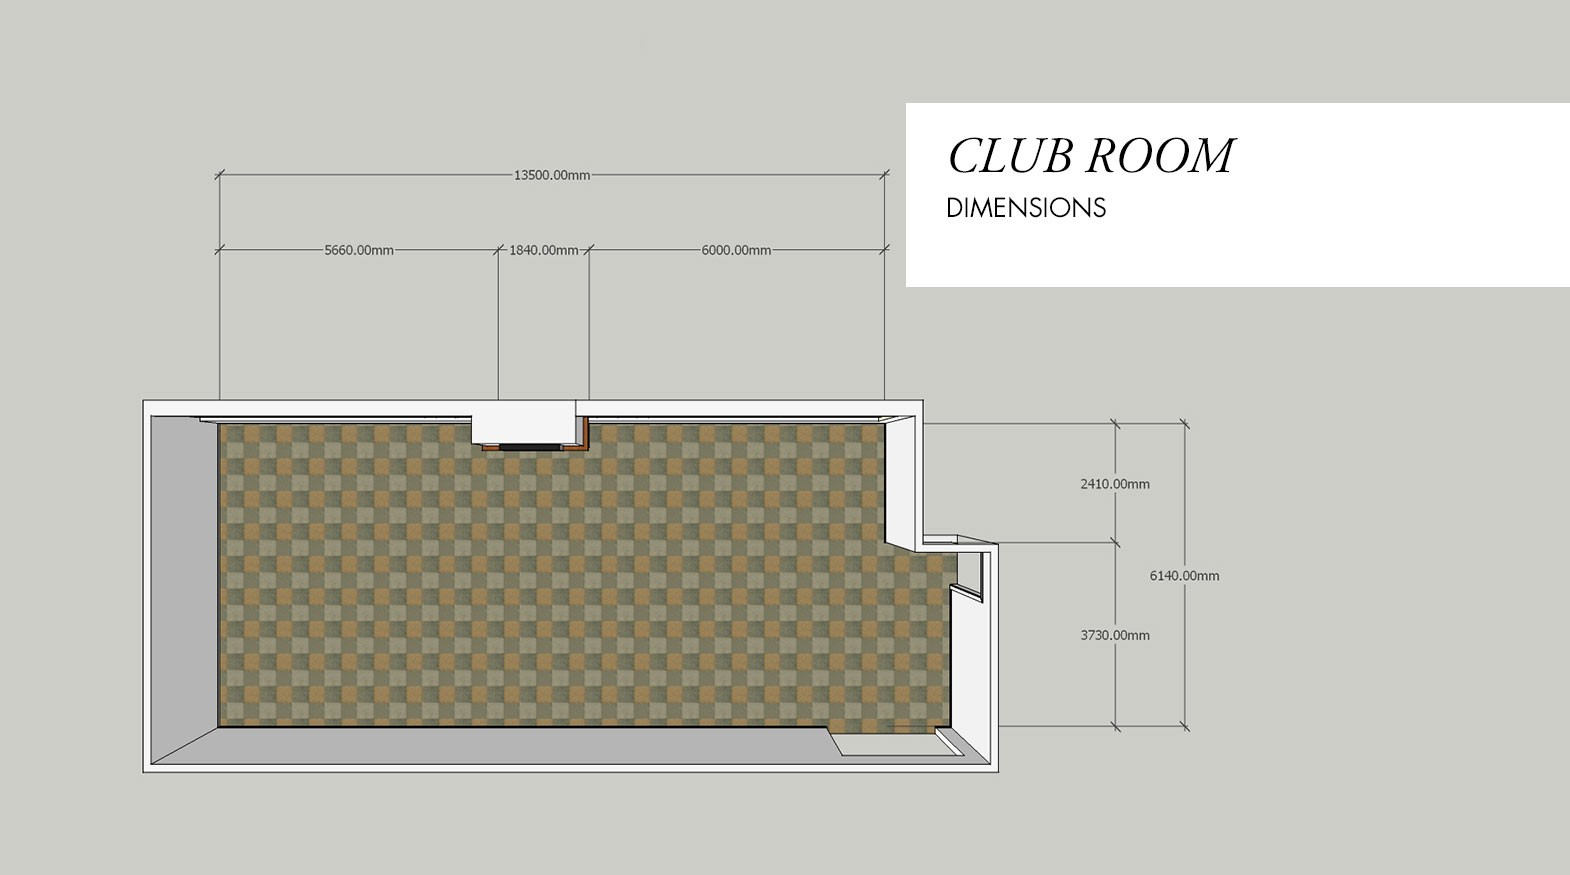 club-room-dimensions.jpg